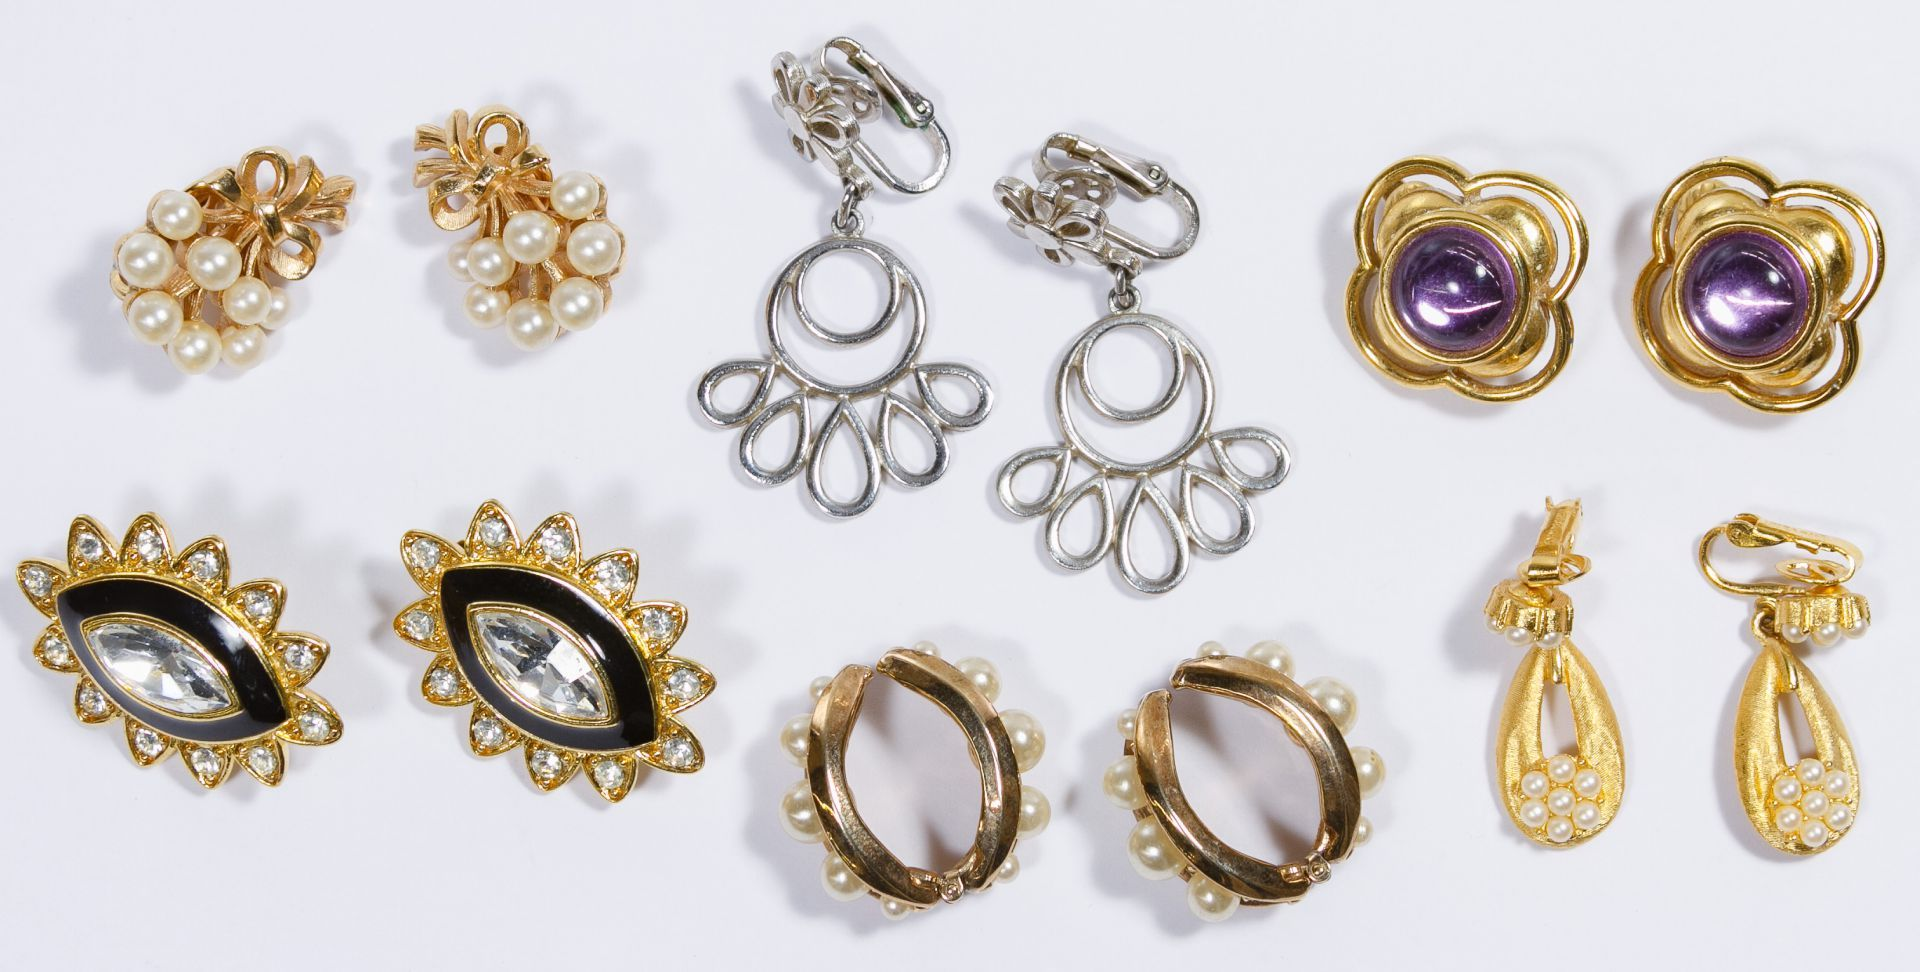 Lot 535 Costume Jewelry Earrings Assortment; Twenty-one pairs with ex&les from Giovanni  sc 1 st  Pinterest & Lot 535: Costume Jewelry Earrings Assortment; Twenty-one pairs with ...